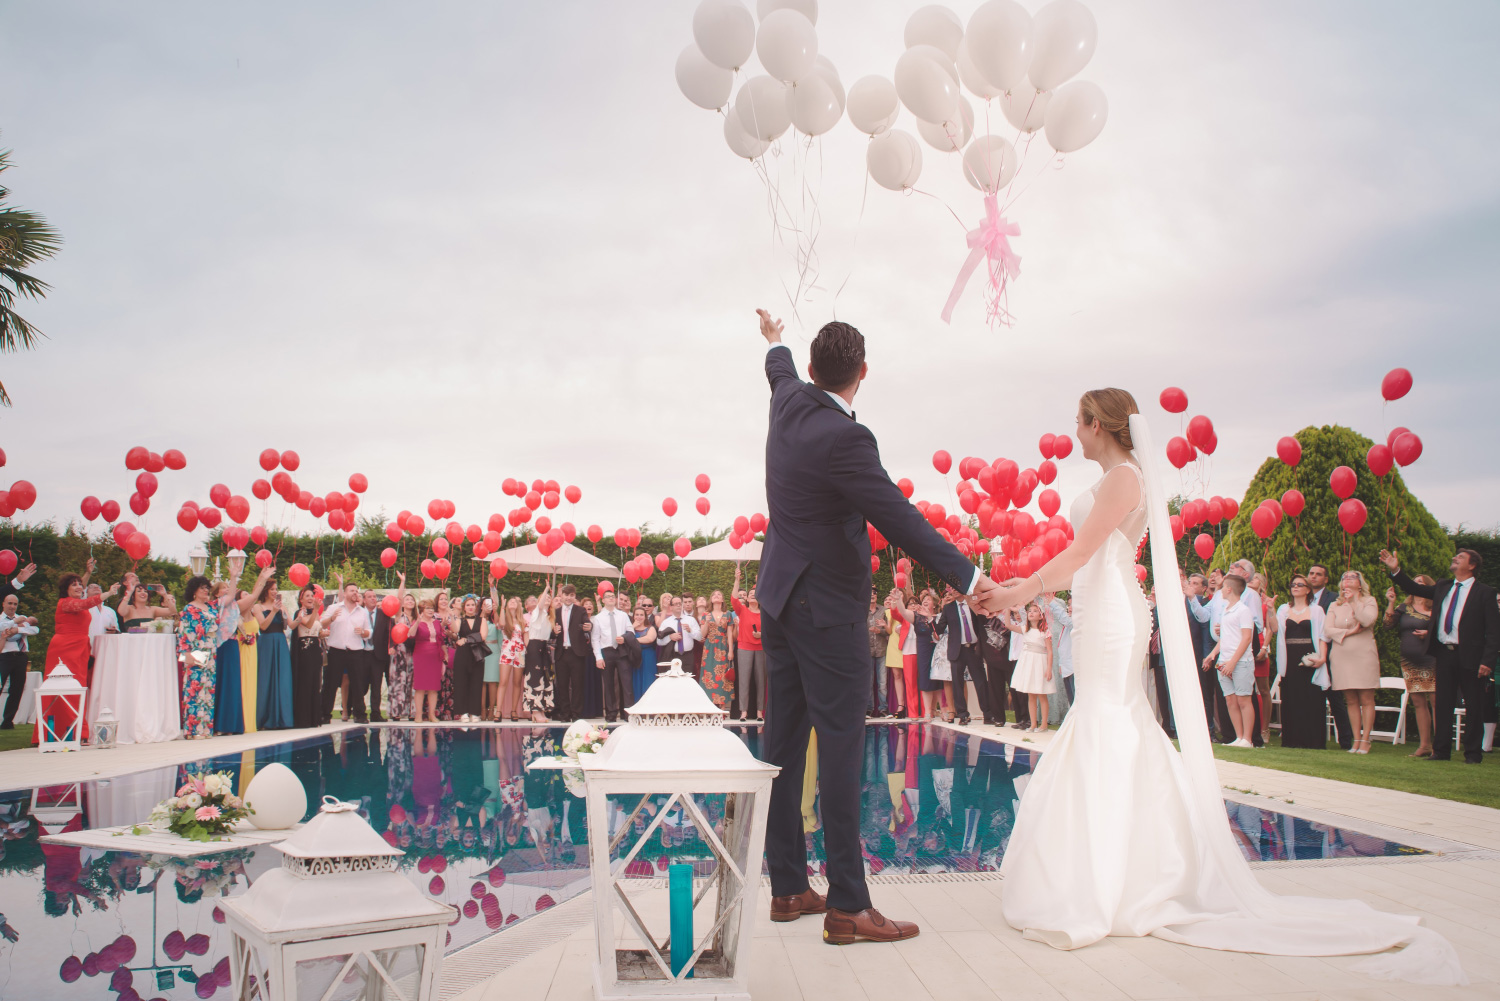 When tying the knot, don't feel guilty when you're not inviting everyone to your wedding